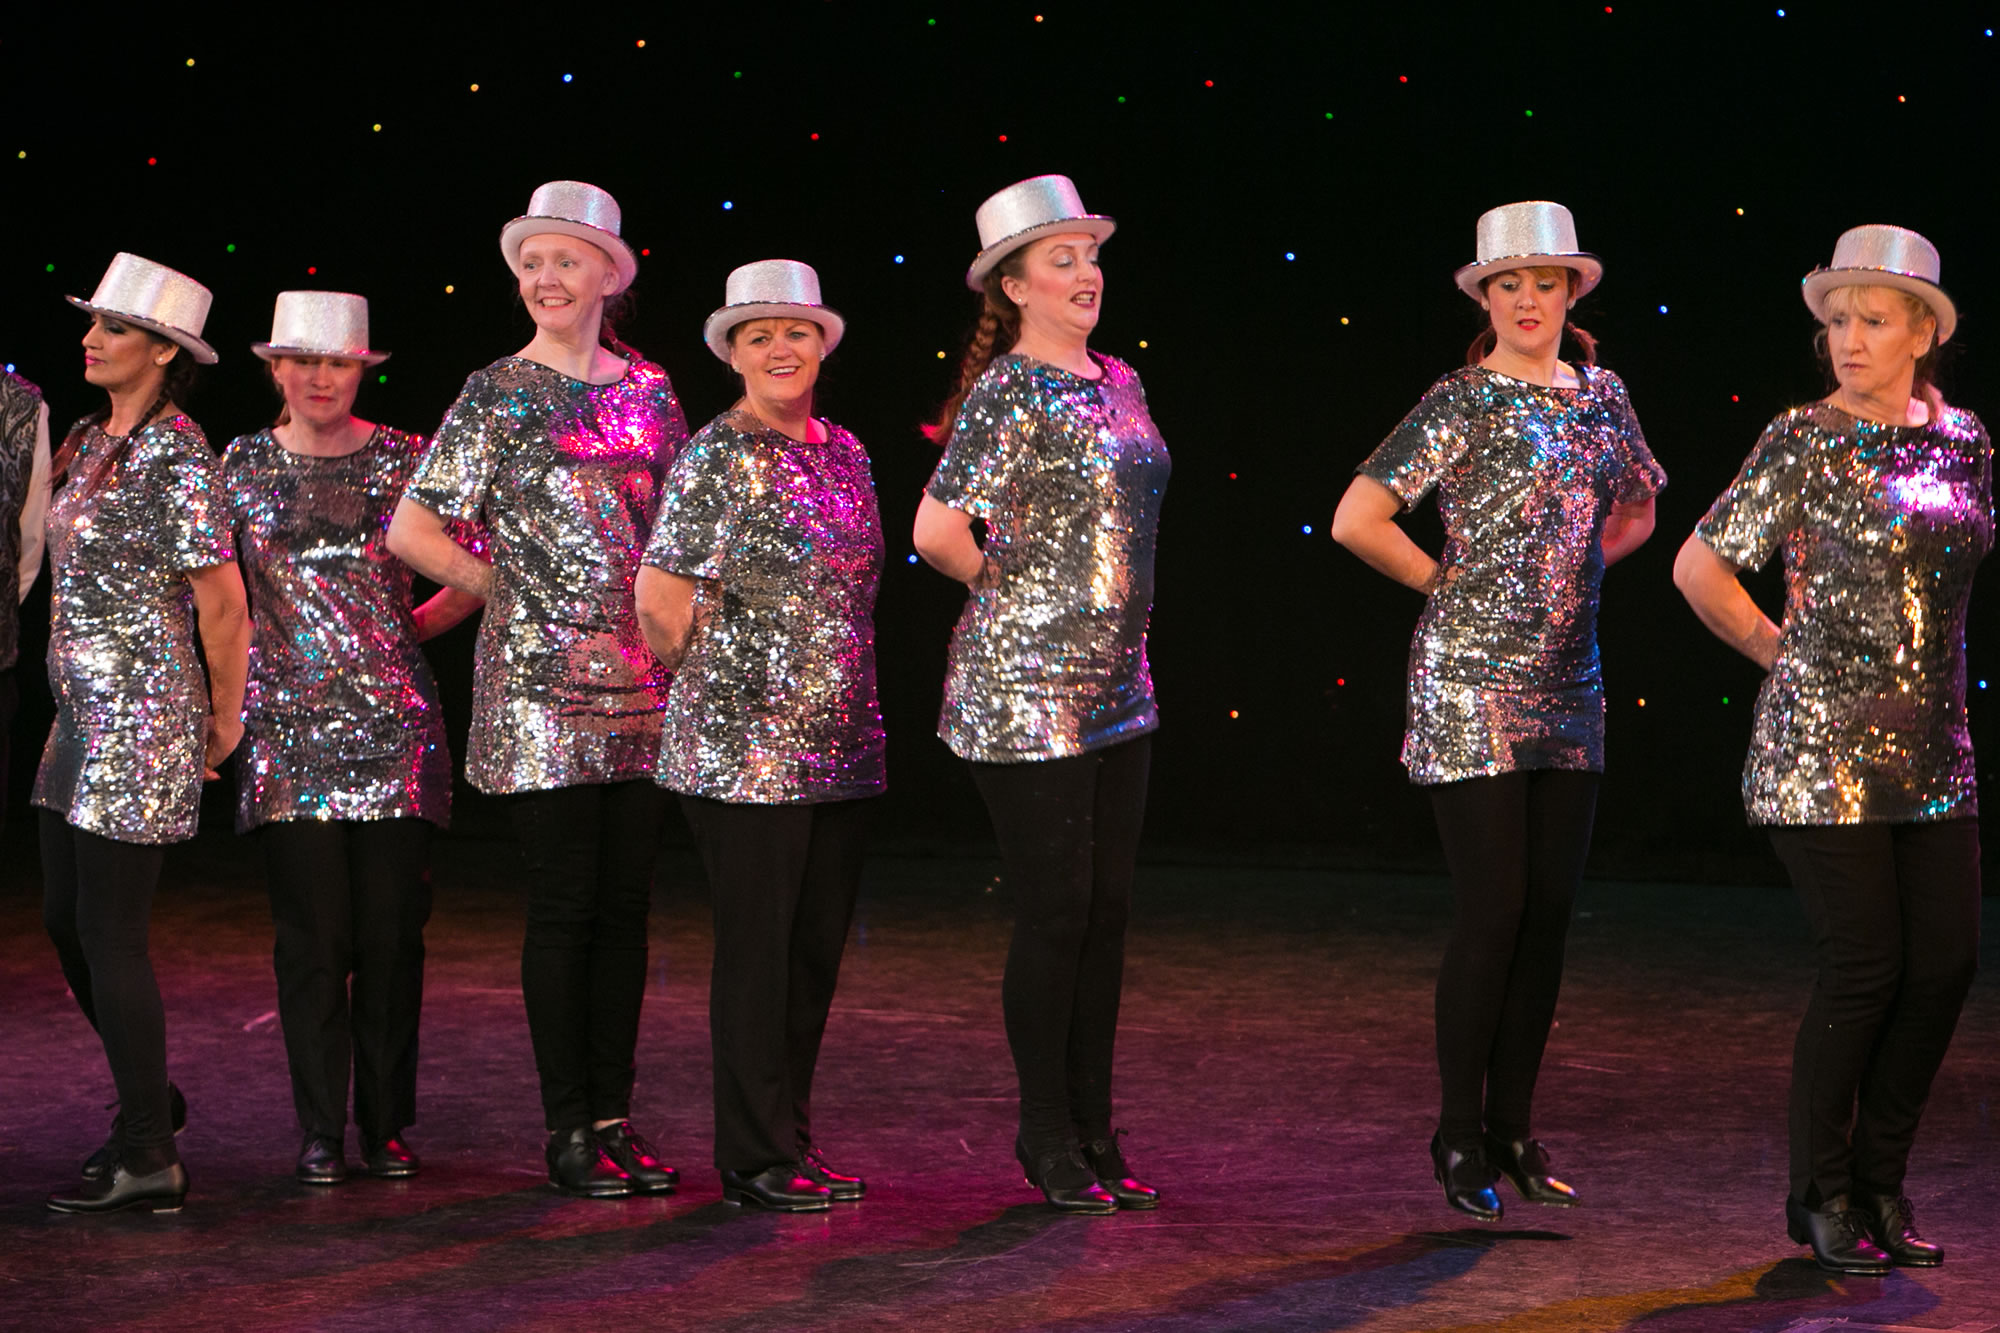 Hitchin_School_of_Dance_Show_2019-SM1_2958.jpg